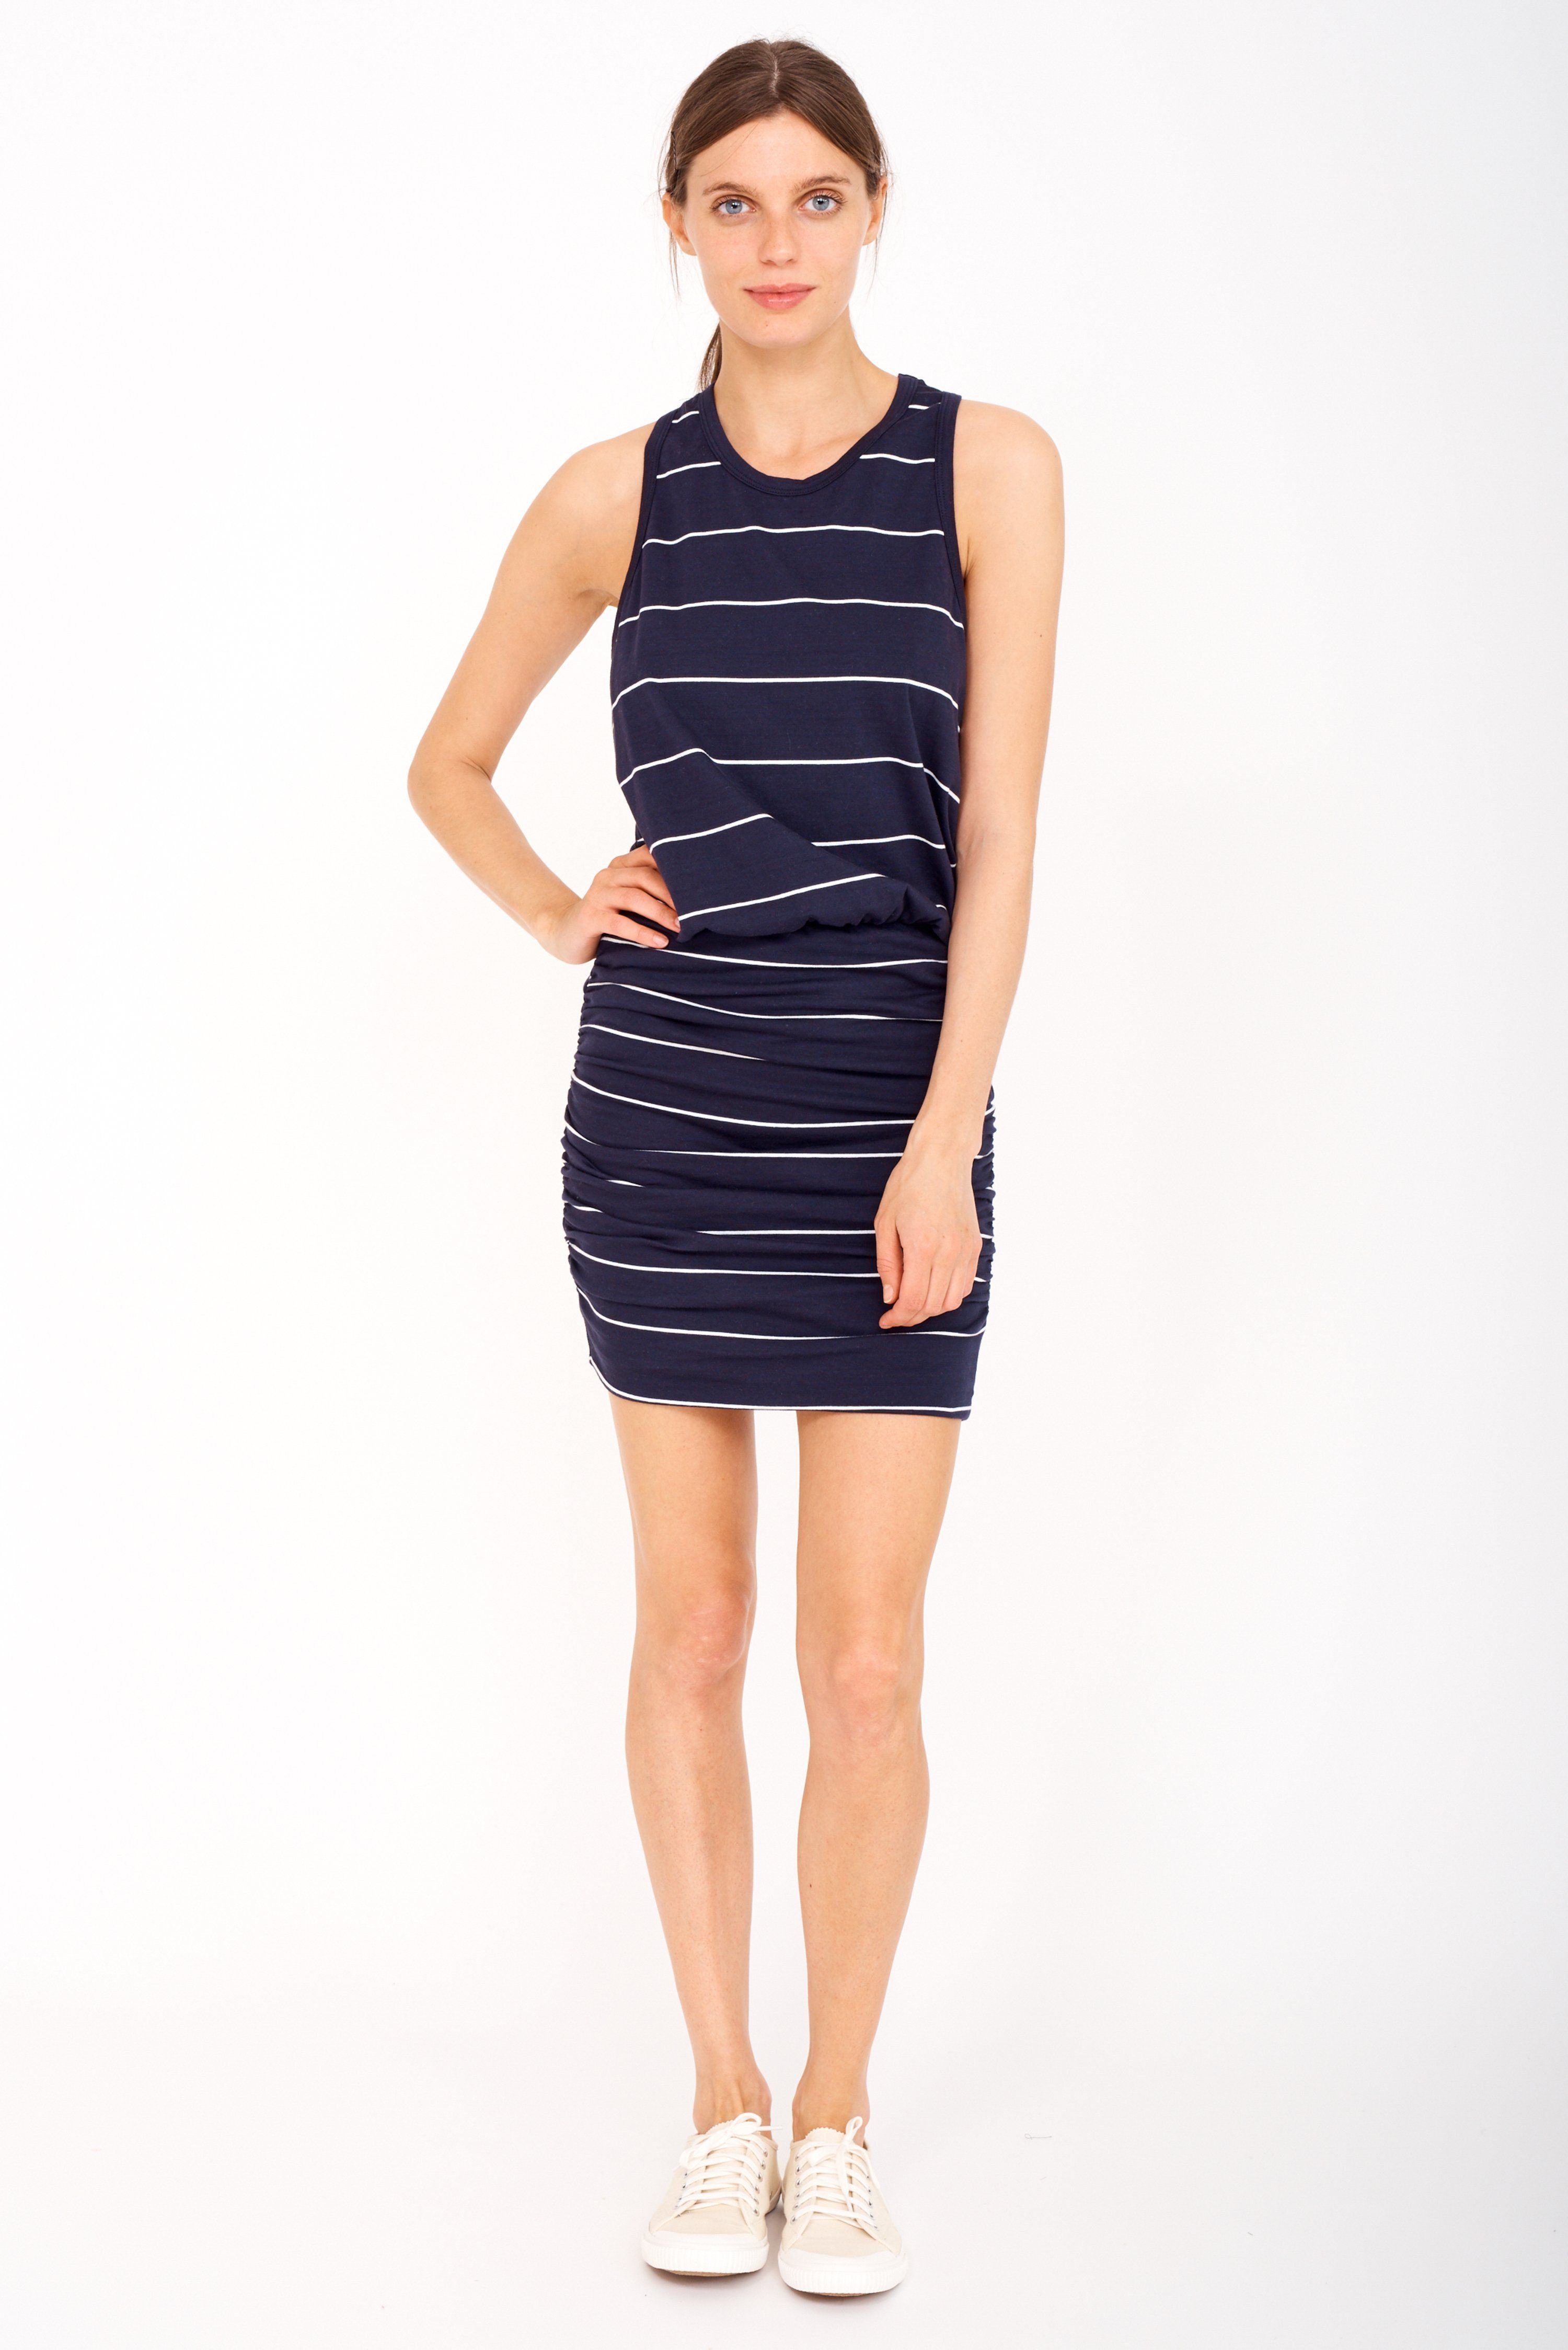 068b0dd1fcd2e Sundry Striped Sleeveless Dress from Sundry